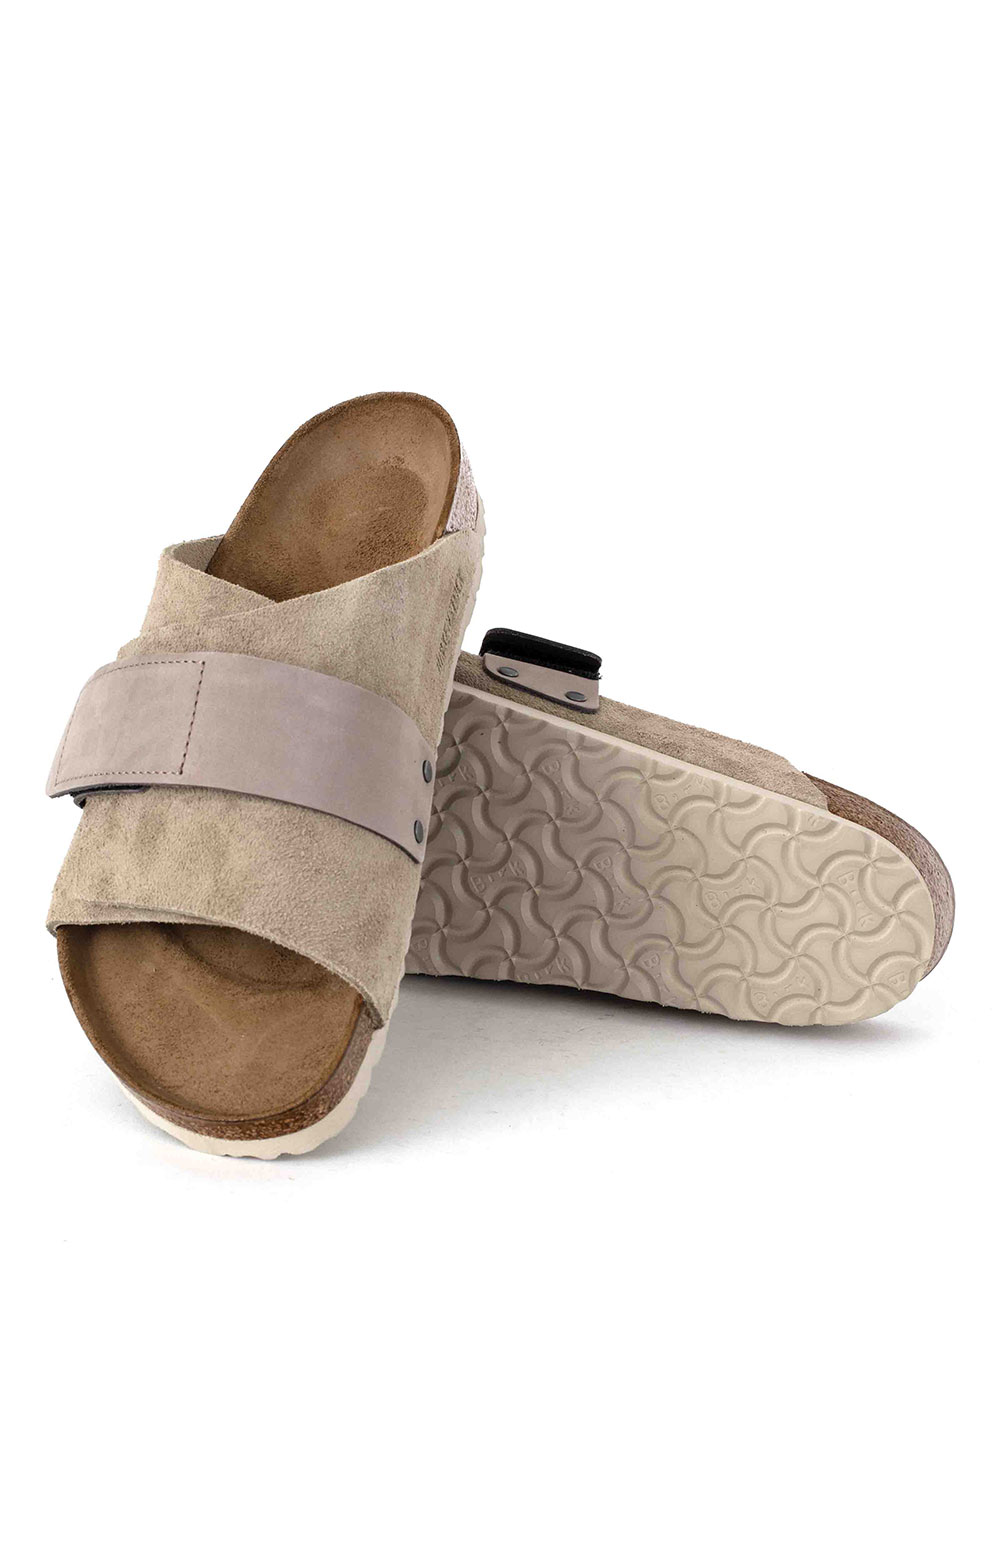 (1015572) Kyoto Sandals - Taupe  4